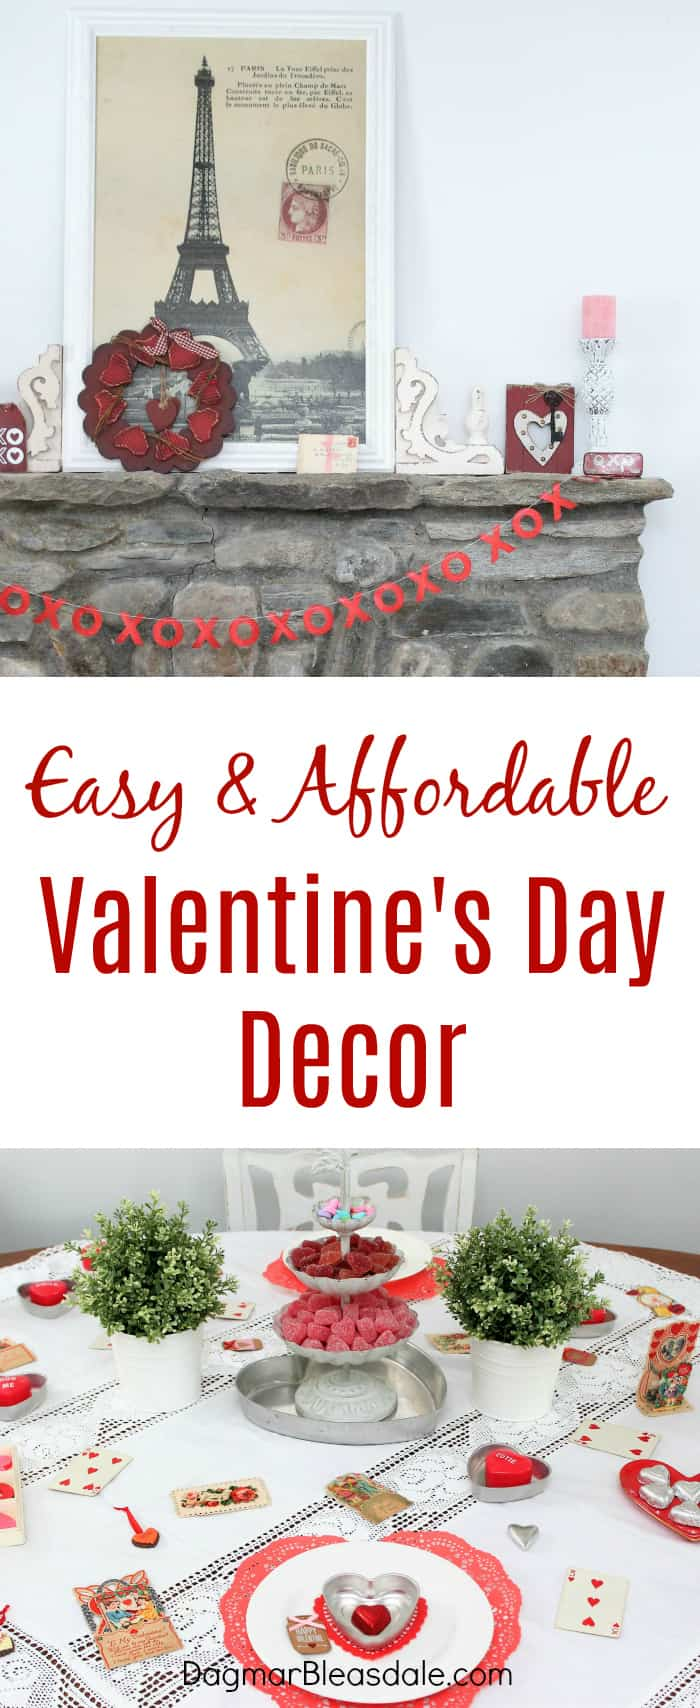 Simple Valentine's Day Decor Ideas